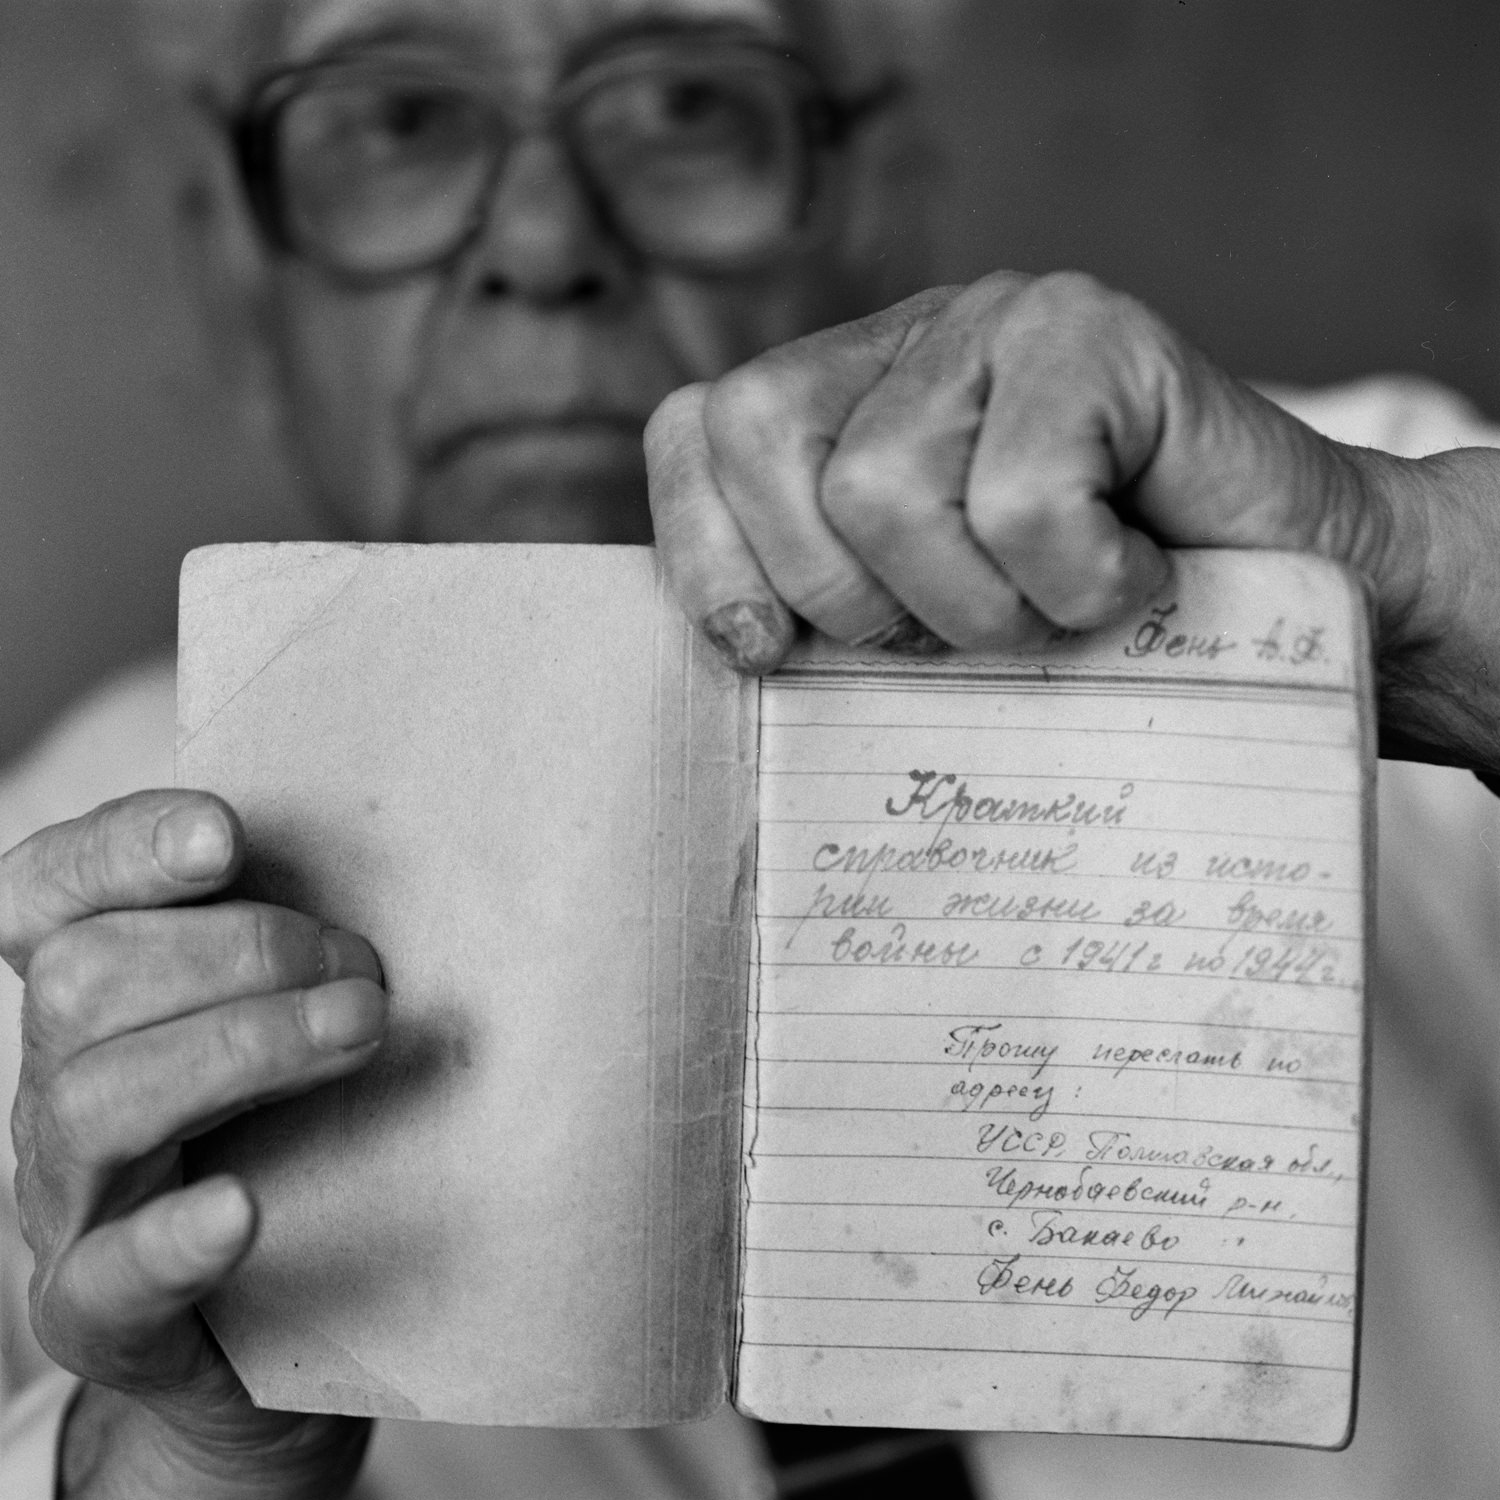 Old veteran showing personal 1941-1945 army notebook in his hands